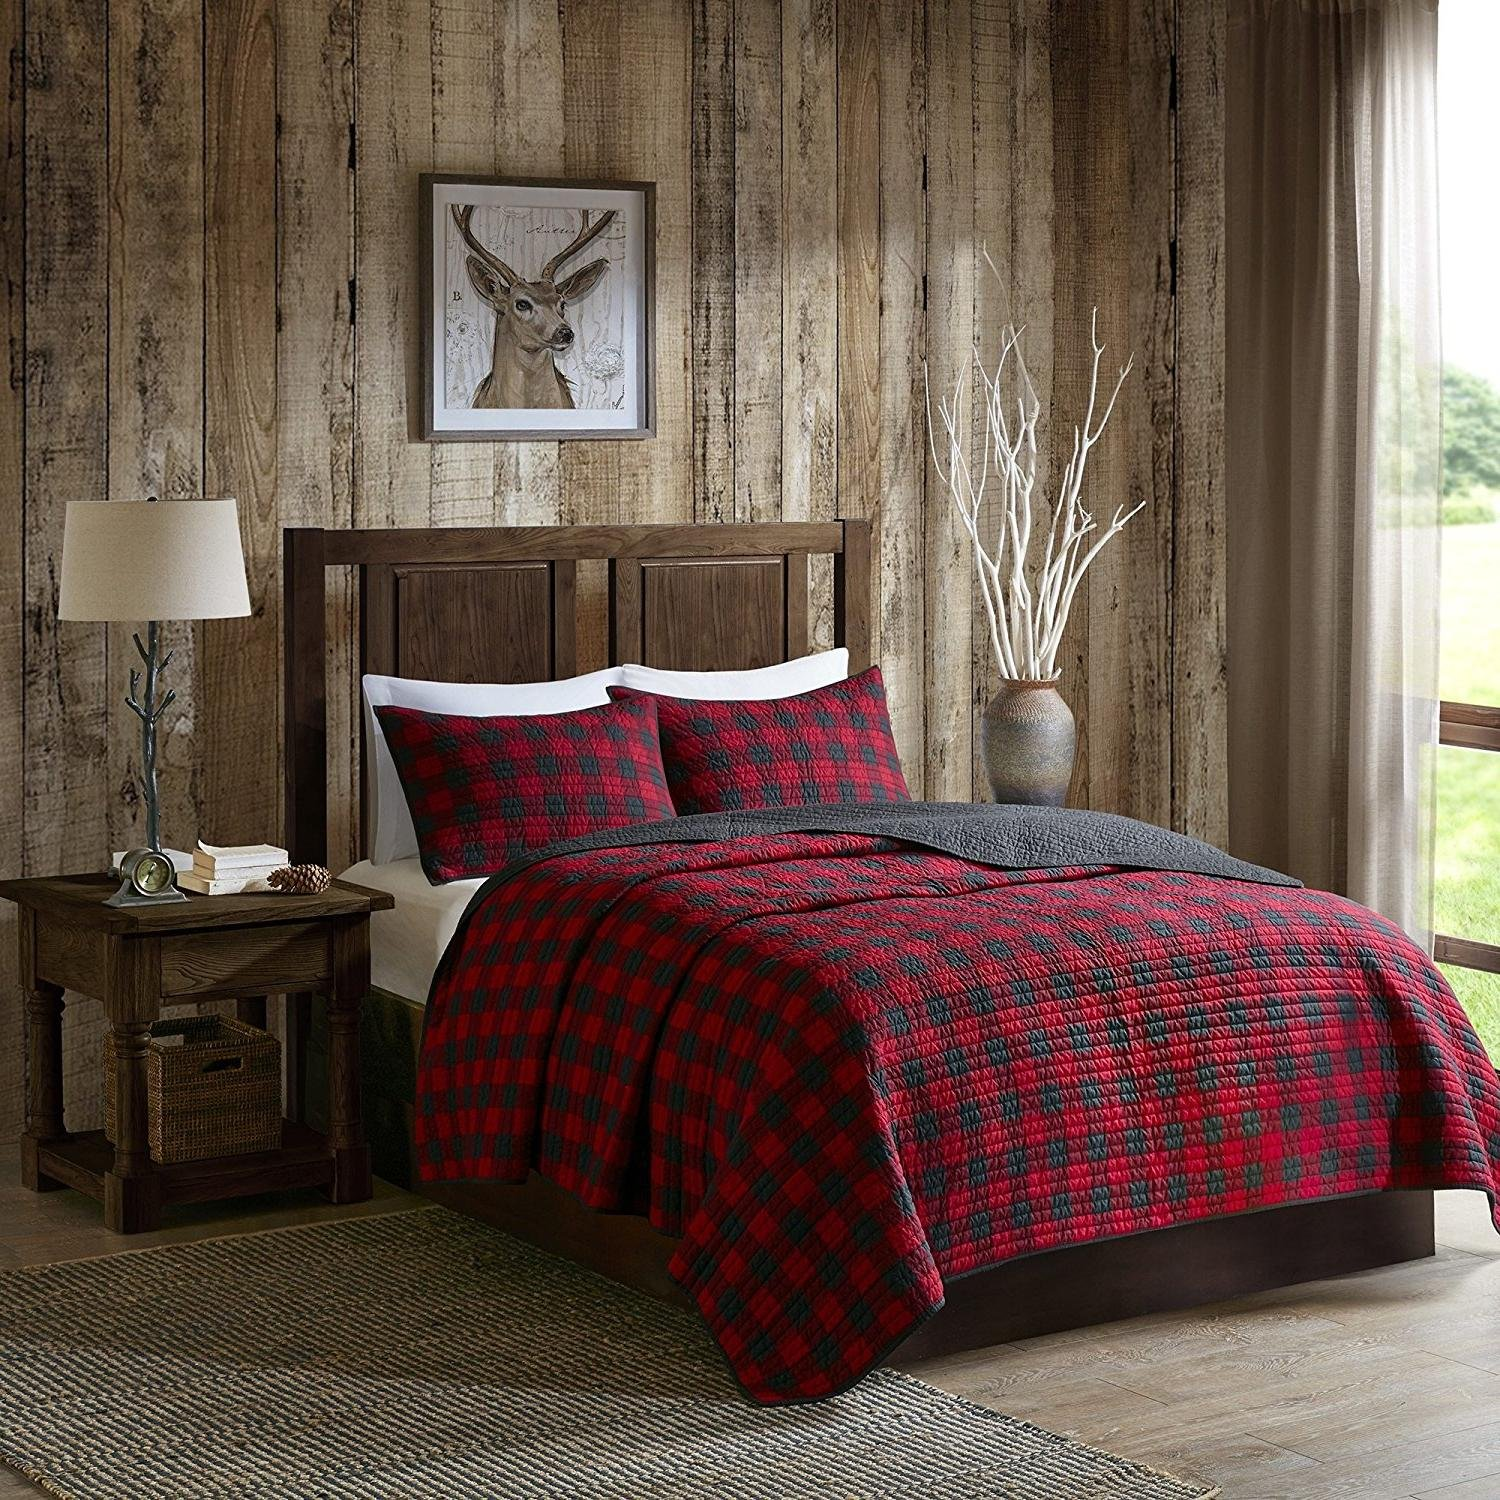 OSD 3pc Black Red Classic Plaid Quilt King/Cal King Set, Cotton, Tartan Checked Pattern Bedding Cabin Lodge Themed Madras Checkered Squares Southwest Western Patchwork Solid Color